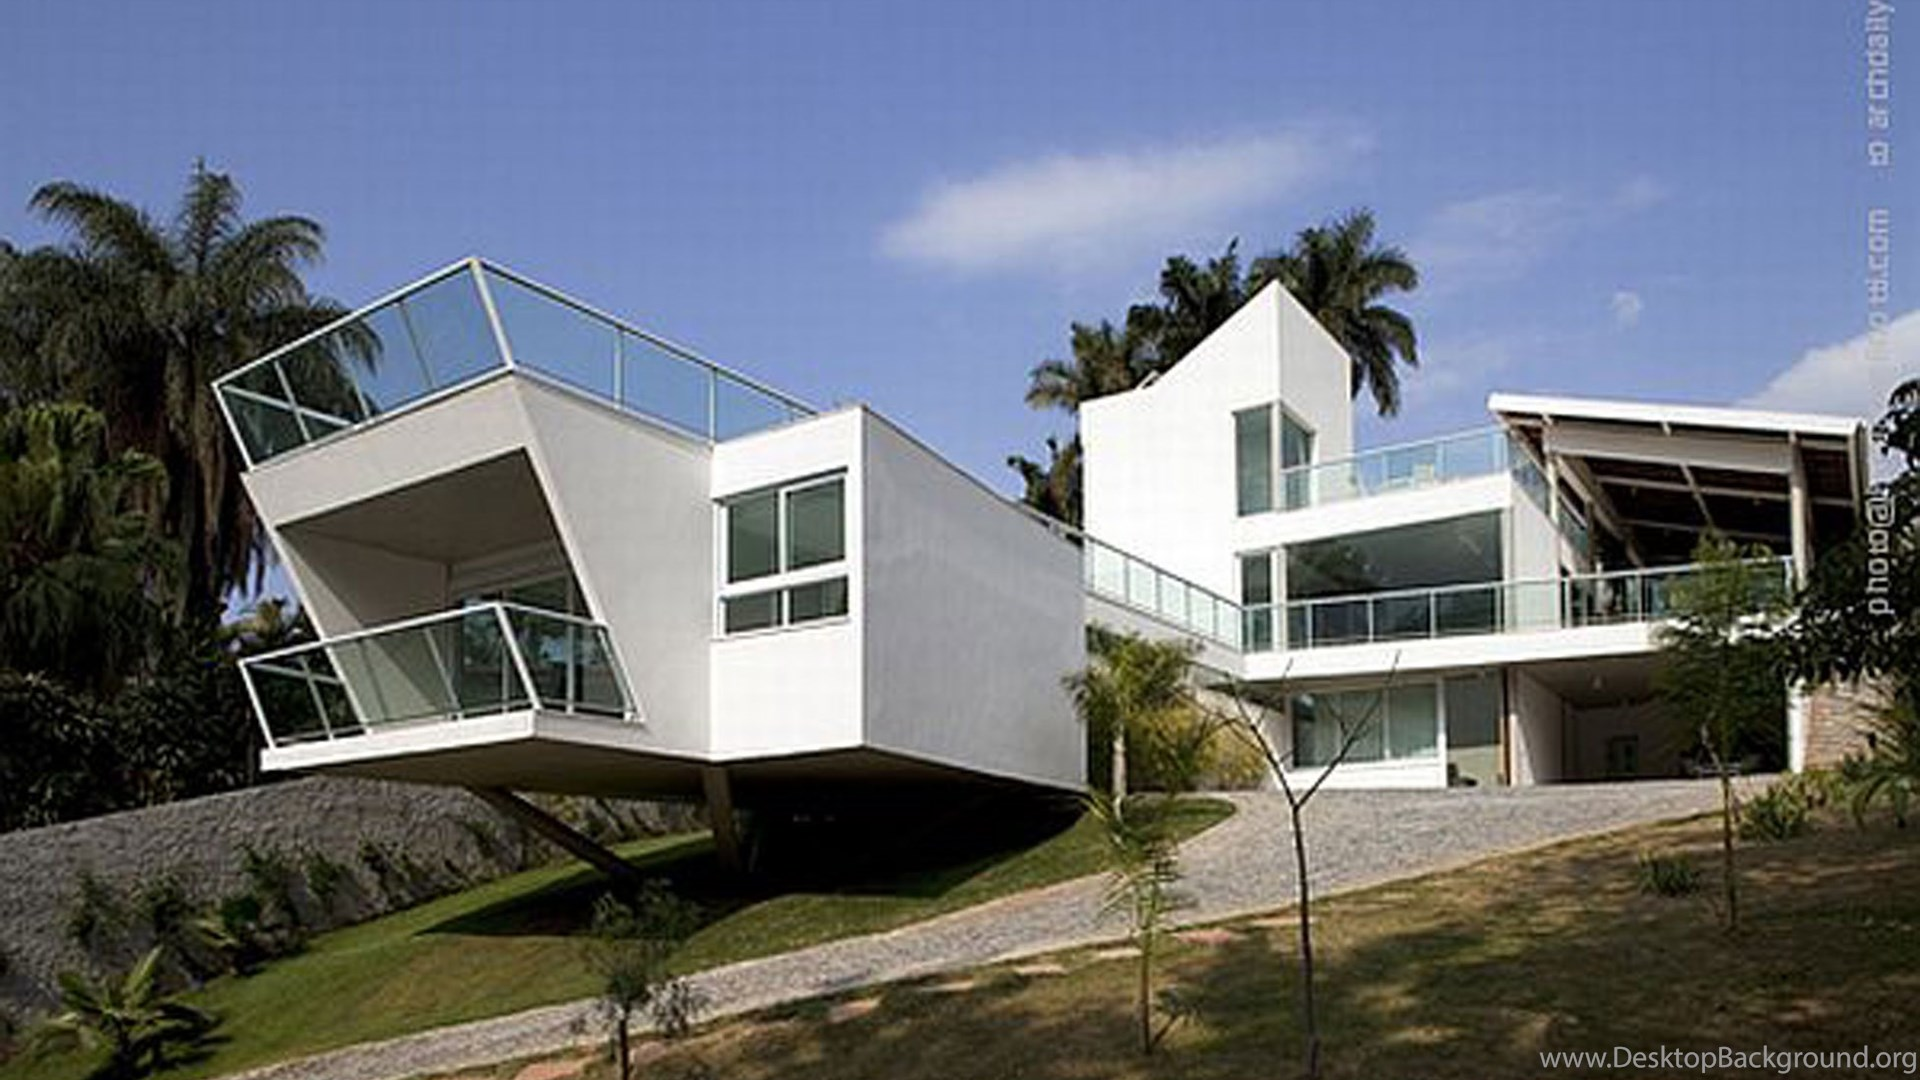 The Best Modern House Architecture On Exterior Design Ideas With ...